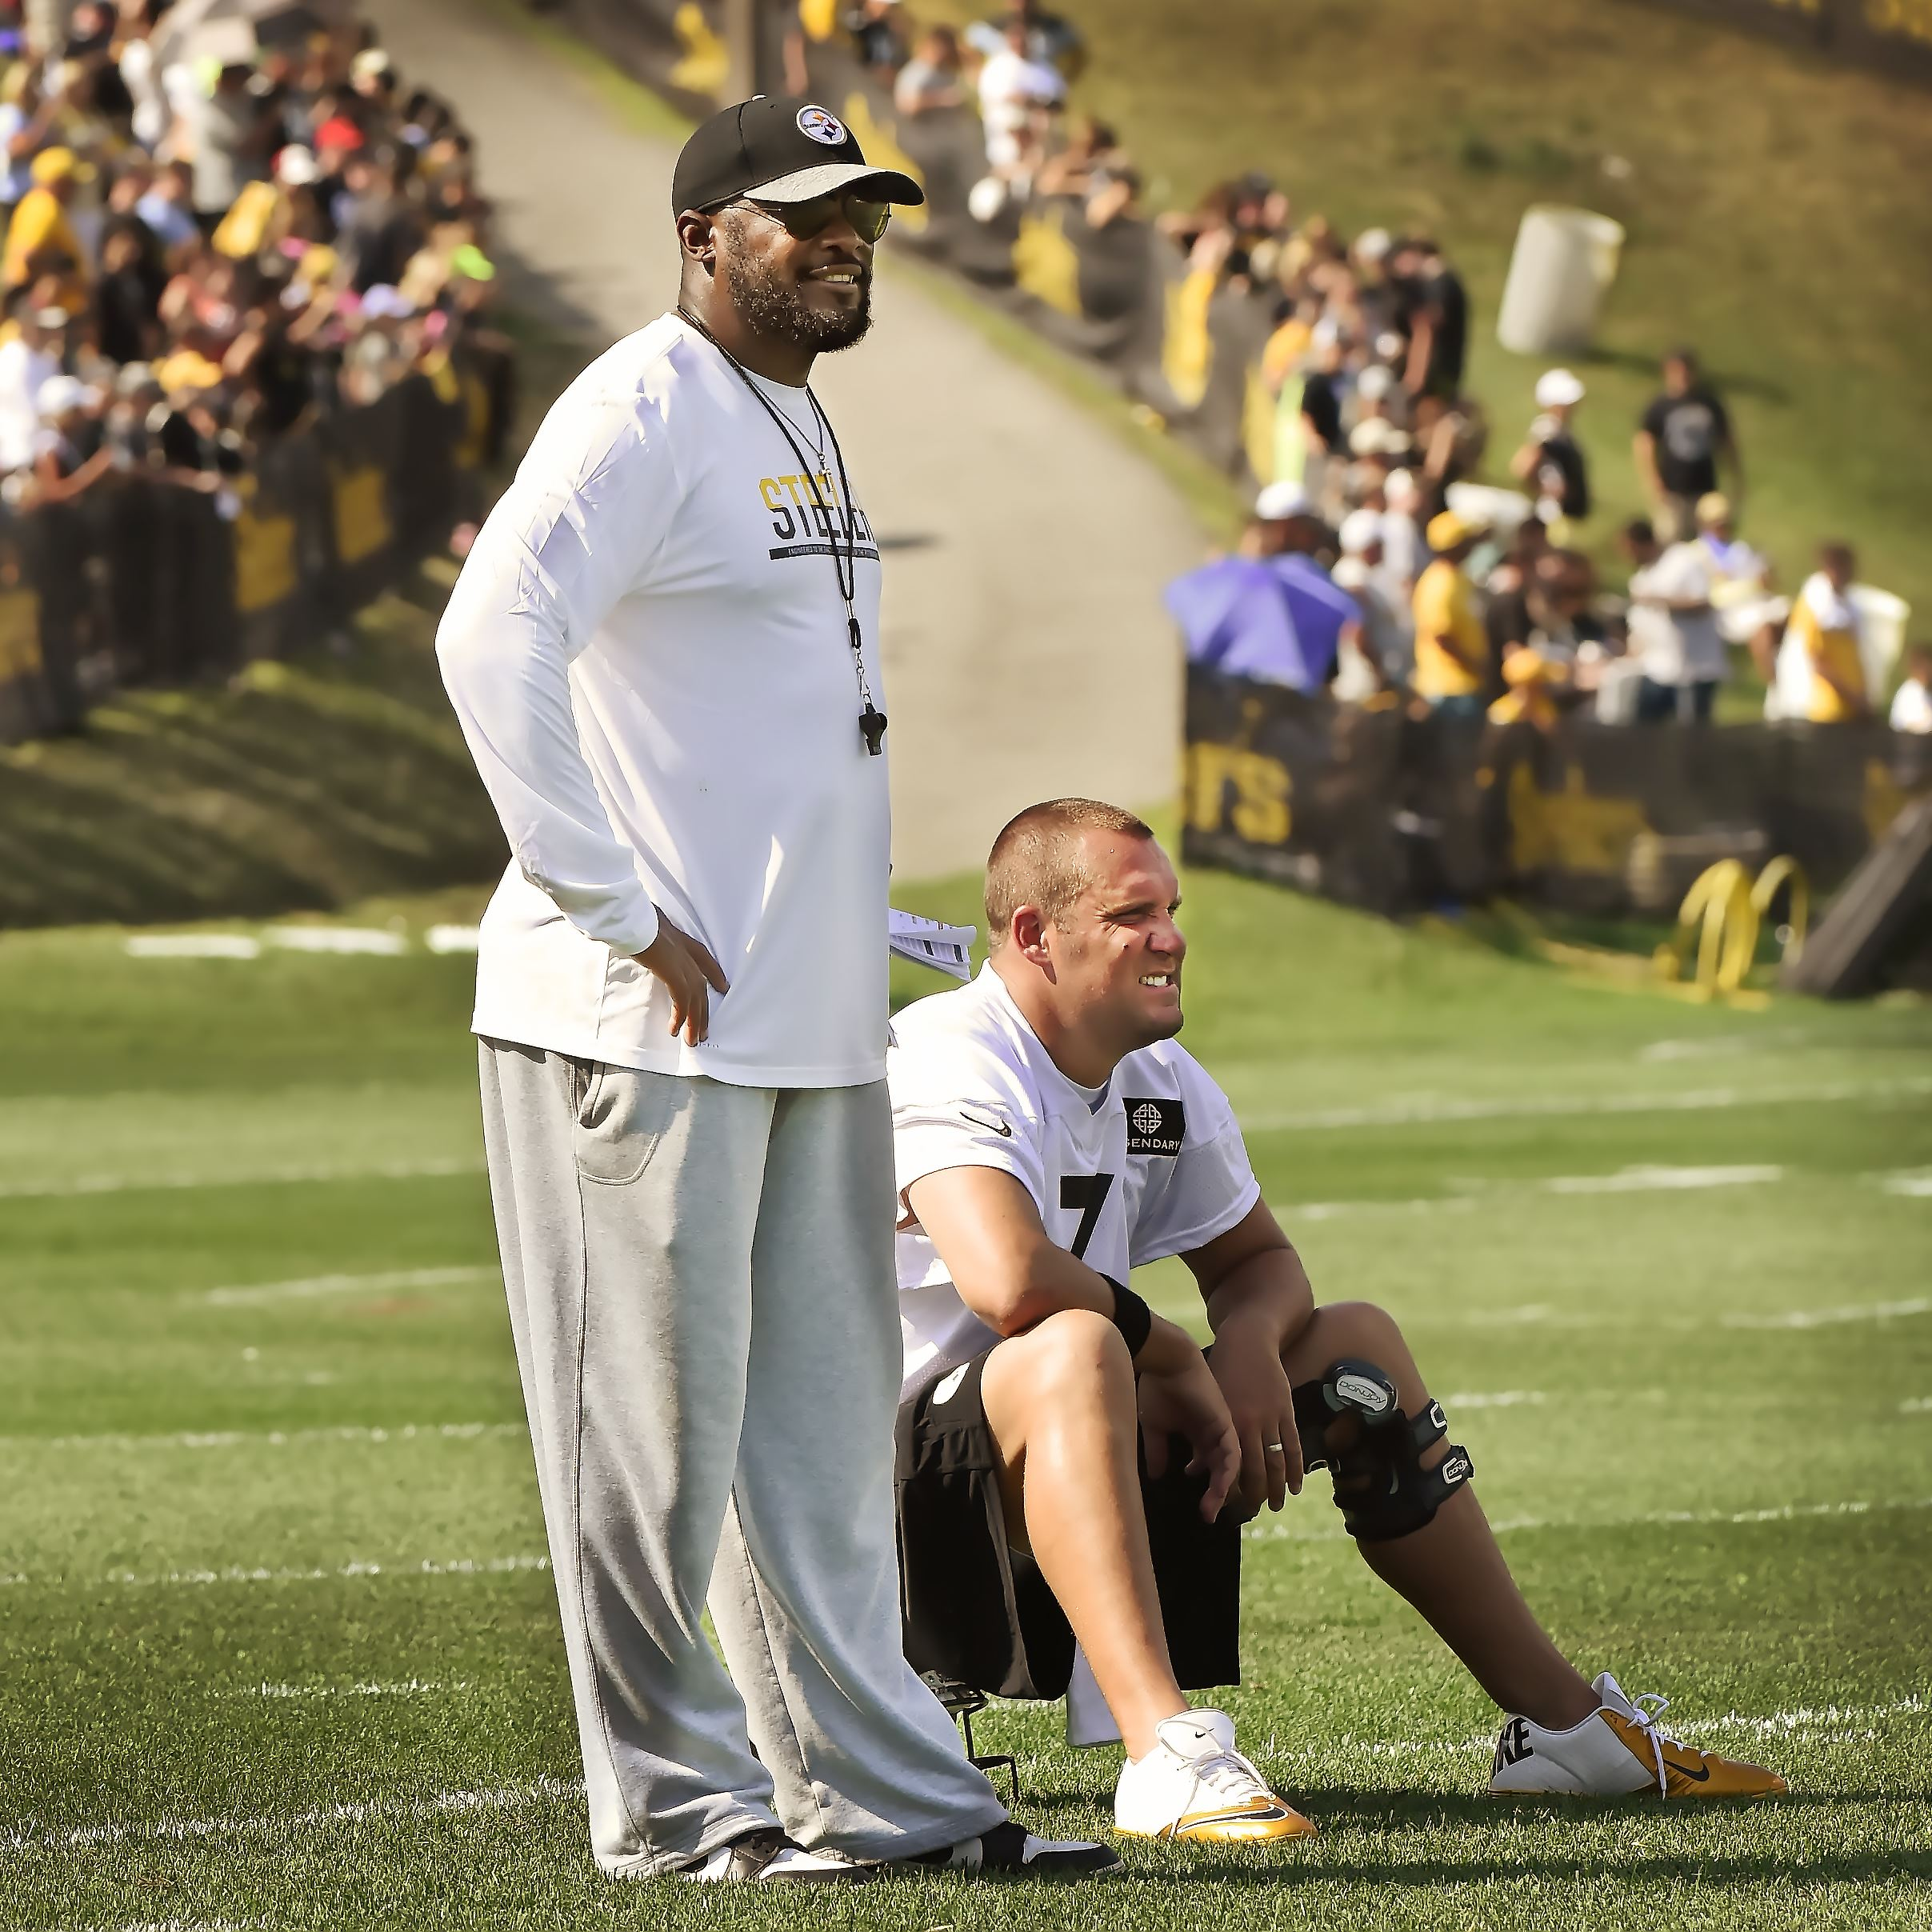 Paul Zeise: Tomlin right to hold out Steelers starters